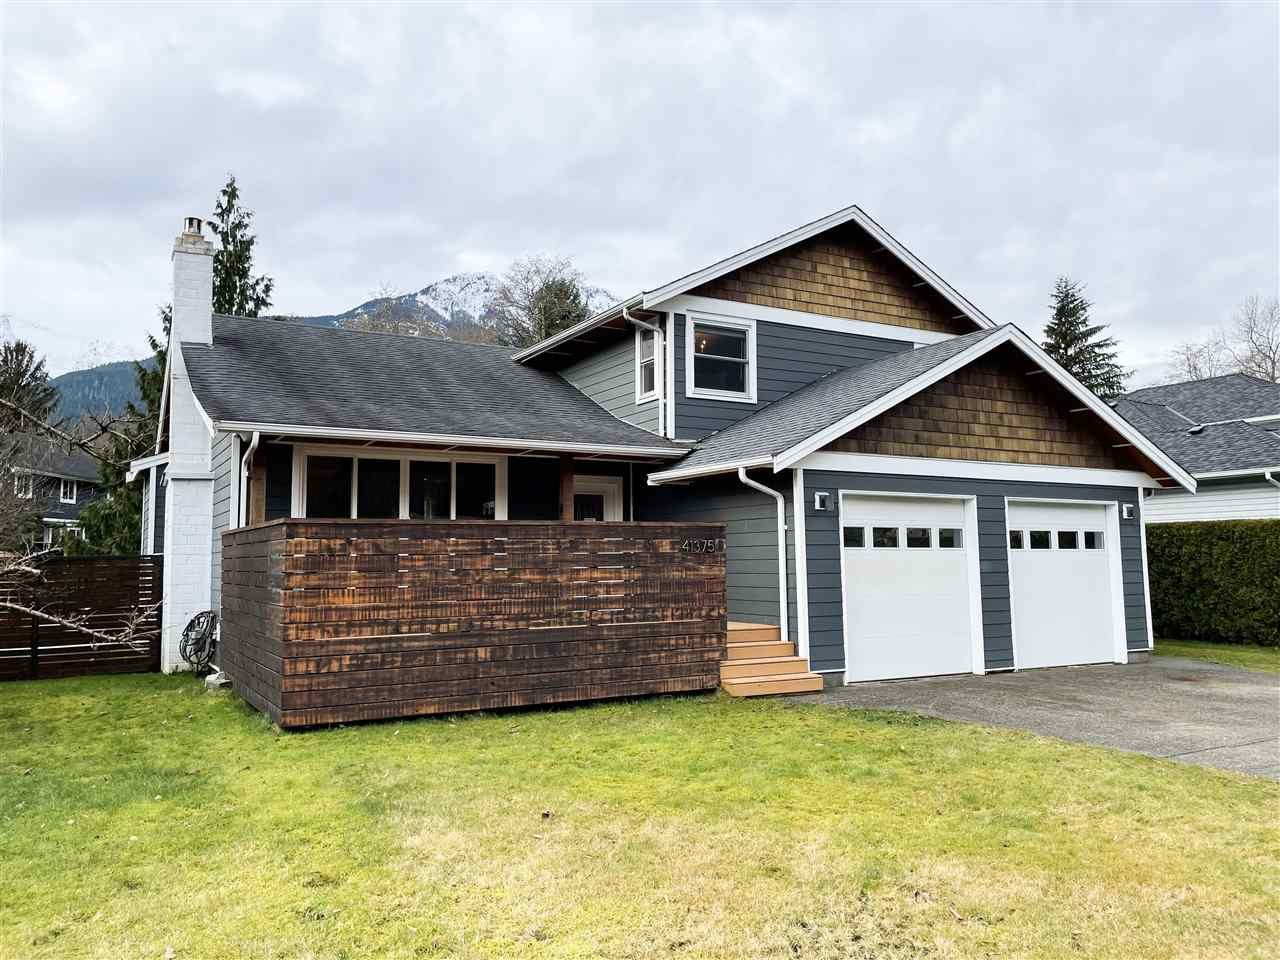 """Main Photo: 41375 DRYDEN Road in Squamish: Brackendale House for sale in """"Brackendale"""" : MLS®# R2531150"""